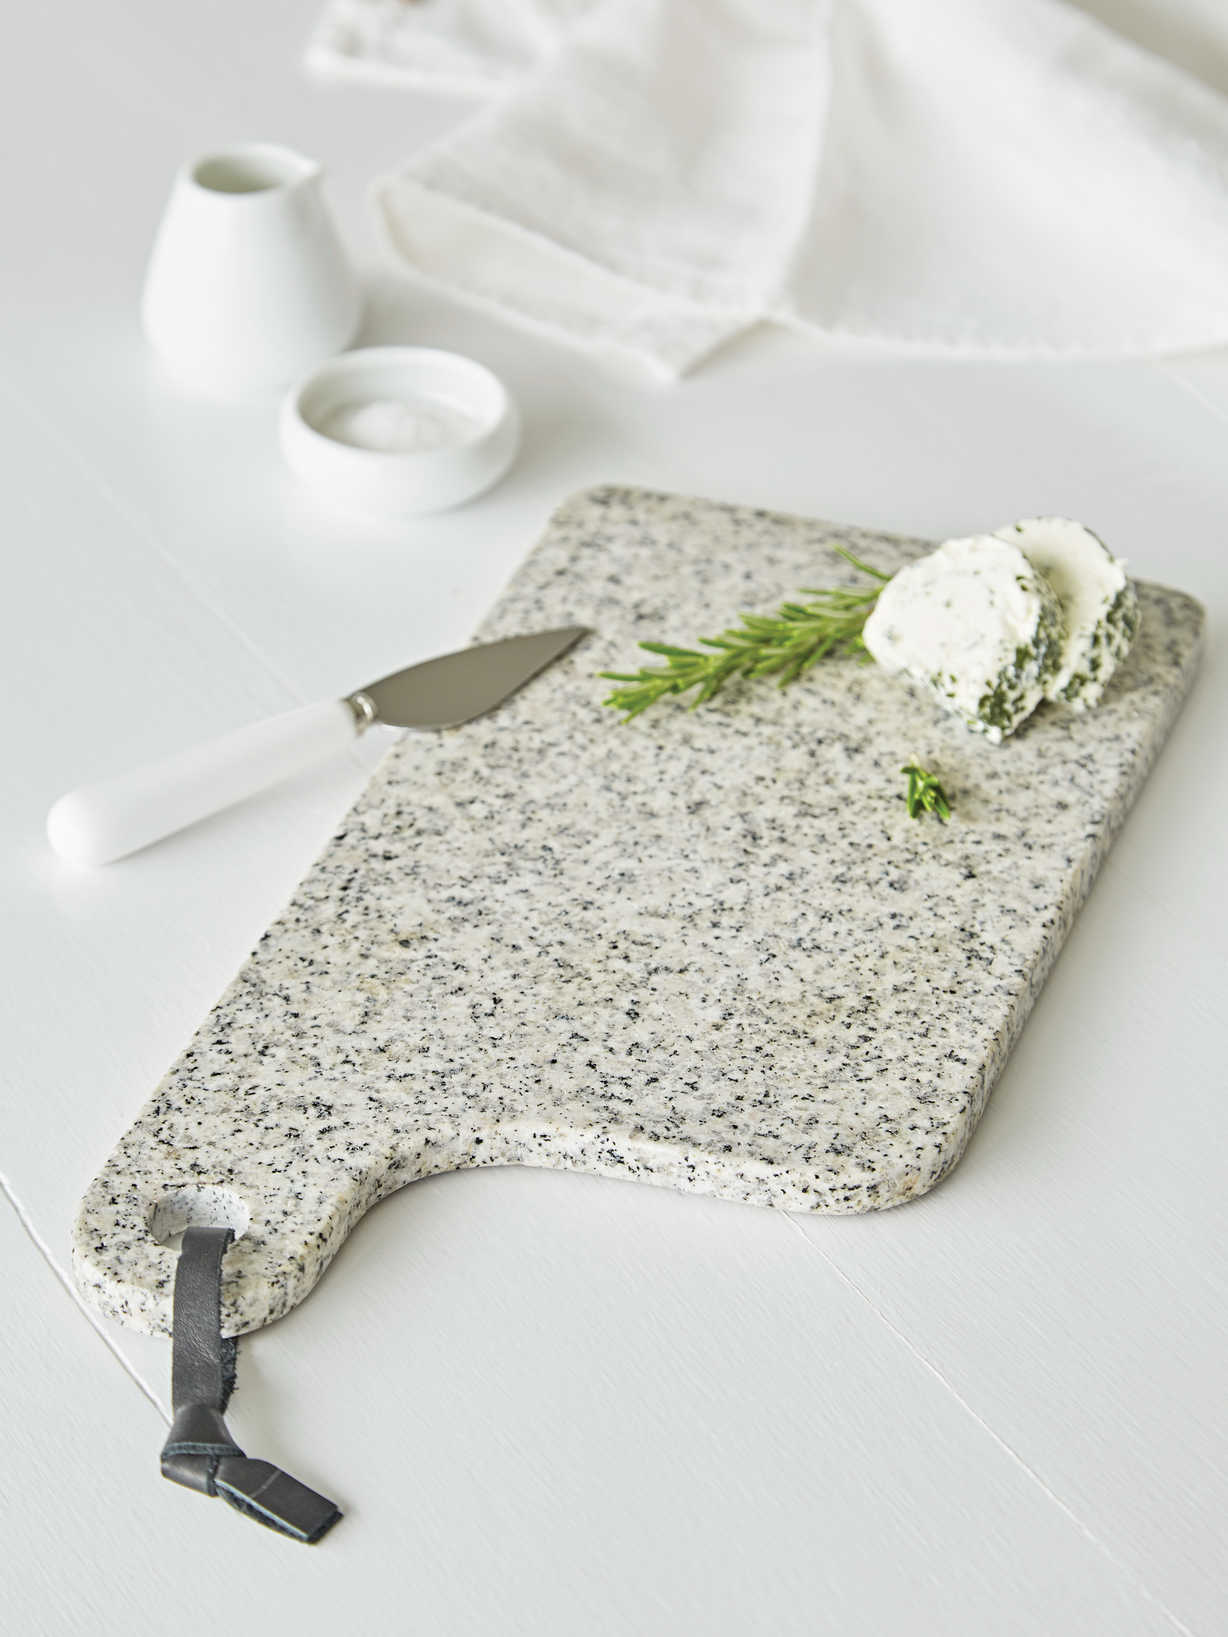 Nordic House Shaped Granite Serving Board